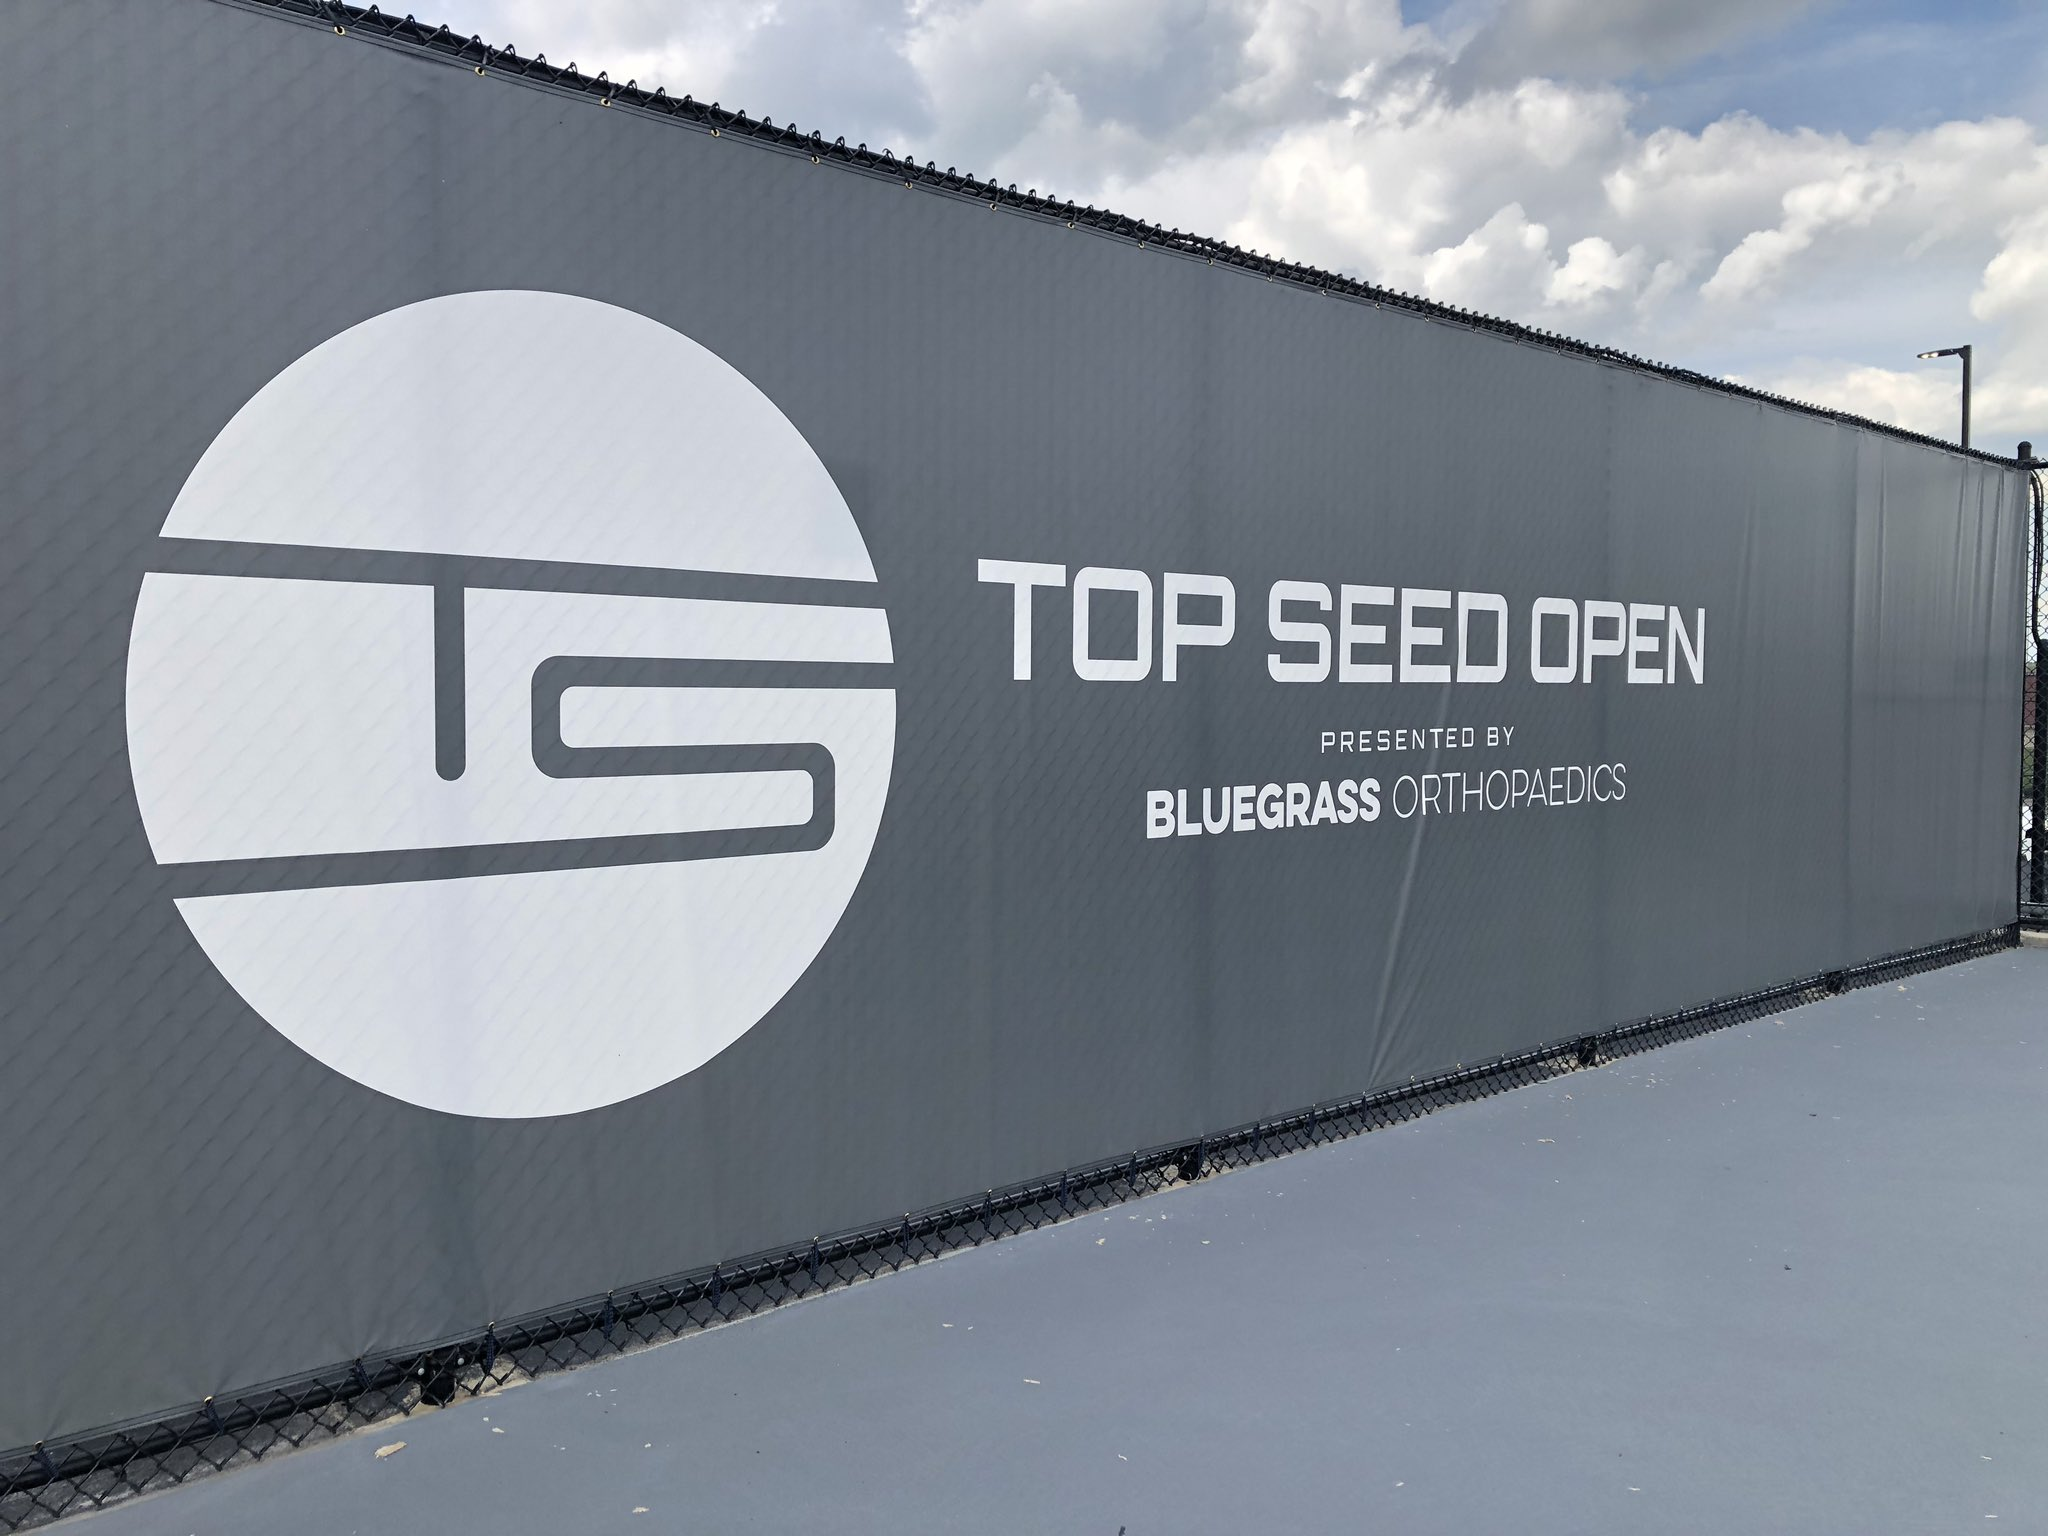 Top Seed Open